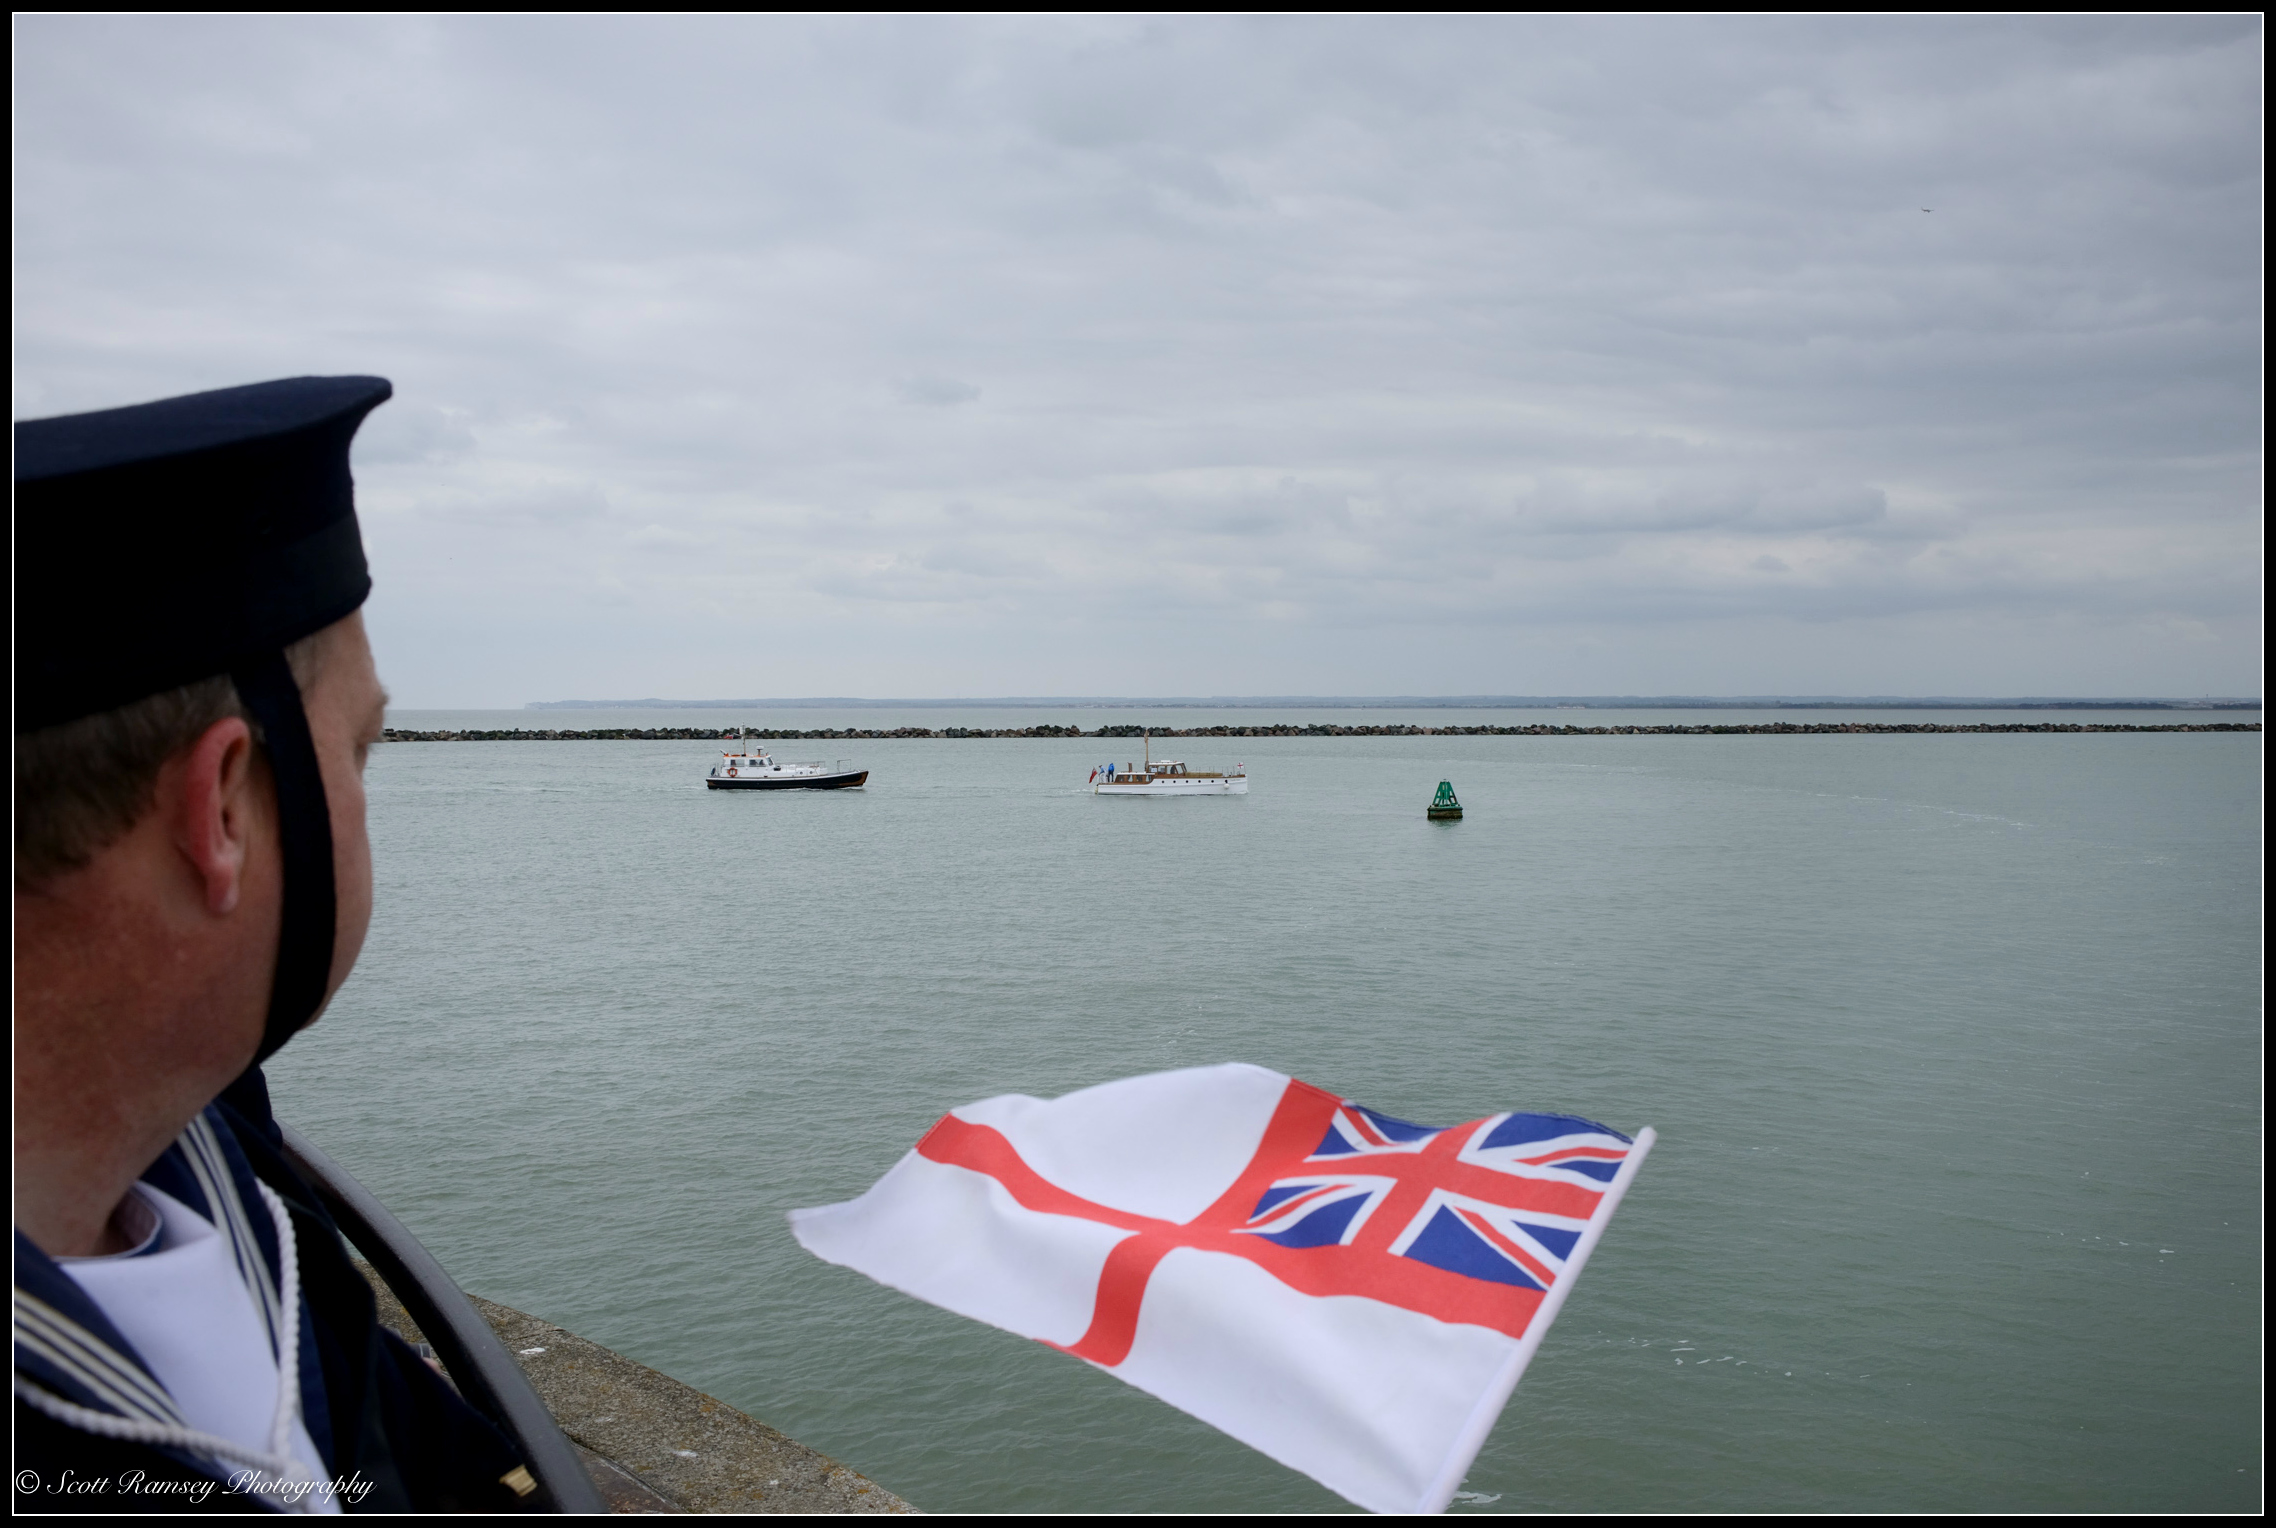 A spectator dressed in a sailors uniform holds a flag as he looks at one of the first of the Dunkirk Little Ships to return to the Royal Harbour Marina Ramsgate, Kent, UKduring a weekend of events to commemorate the 75th anniversary of Operation Dynamo.©Scott Ramsey Photography